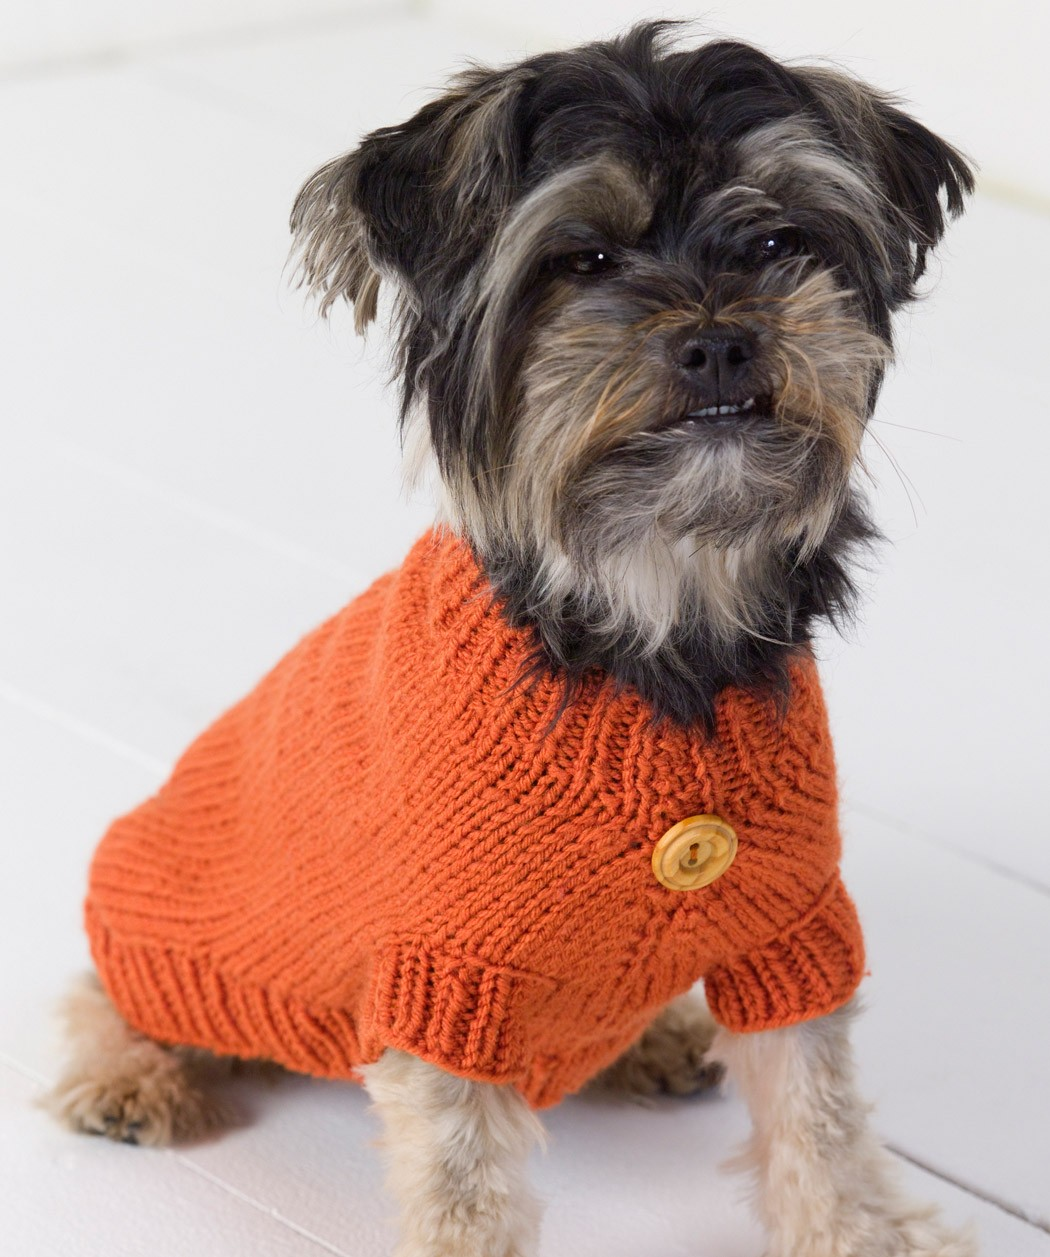 Knitting Pattern For A Small Dog Coat : Dog Sweater Knitting Pattern Cute Small Dog Sweater Dog ...